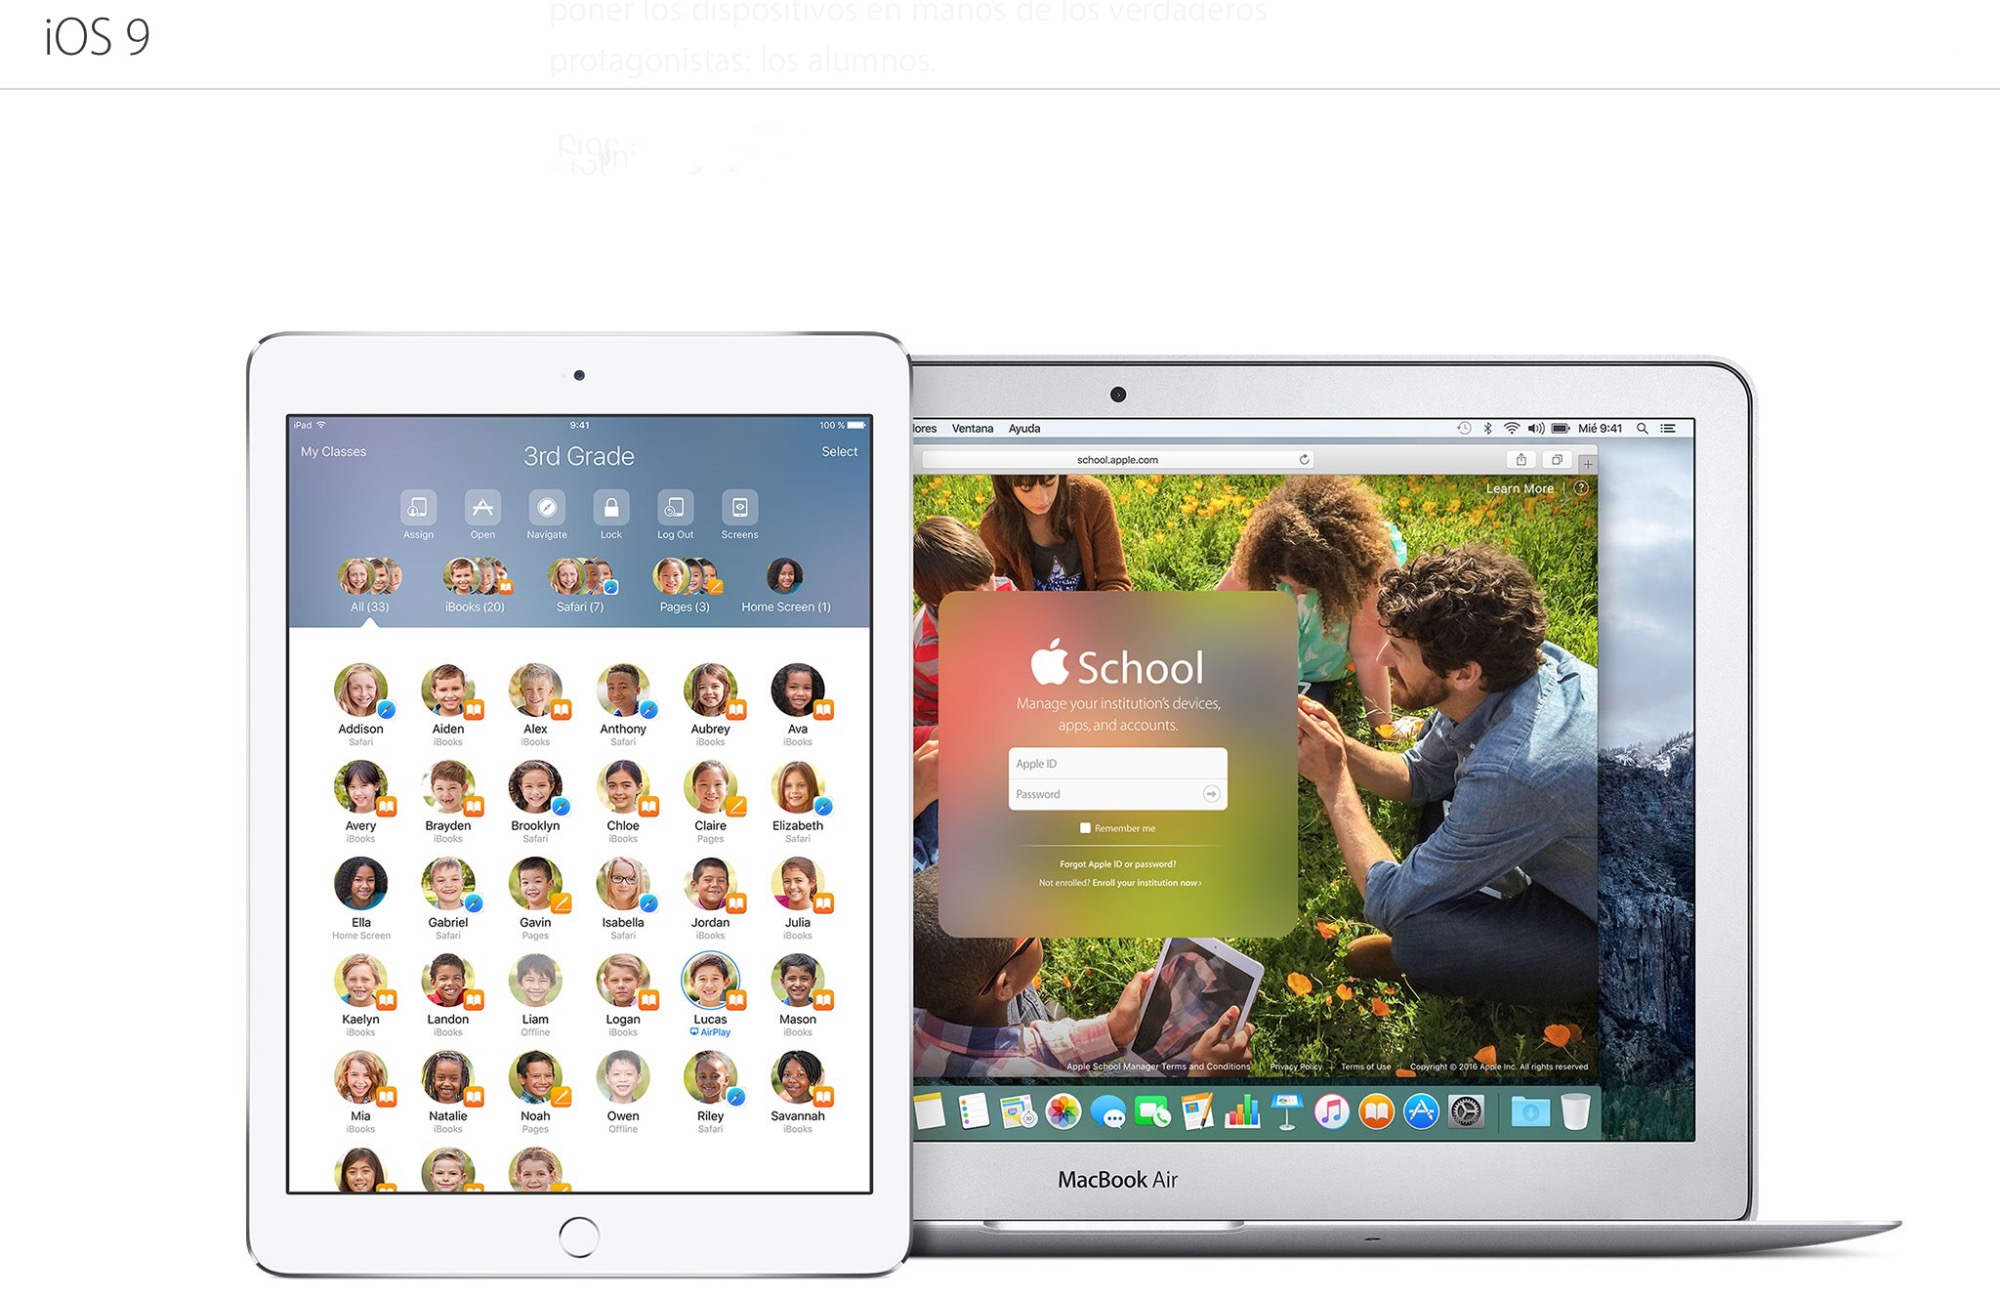 http://hablandodemanzanas.com/sites/default/files/Imagen-Apple-iOS%209.3-Educacion.jpg